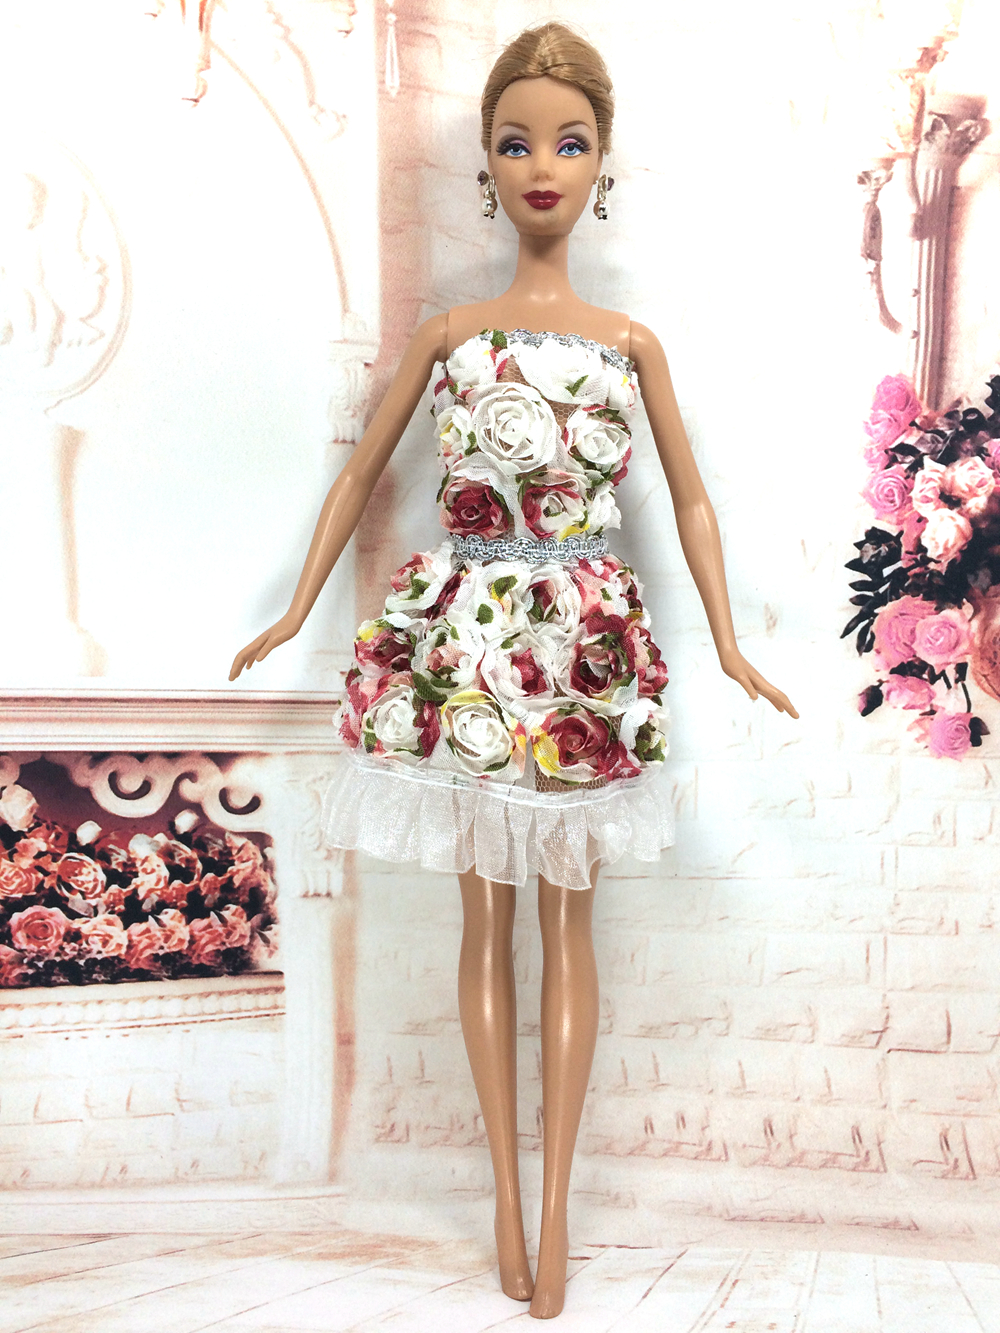 NK 2018 Newest Doll Dress Beautiful Handmade Party ClothesTop Fashion Dress For Barbie Noble Doll Best Child Girls'Gift 054A